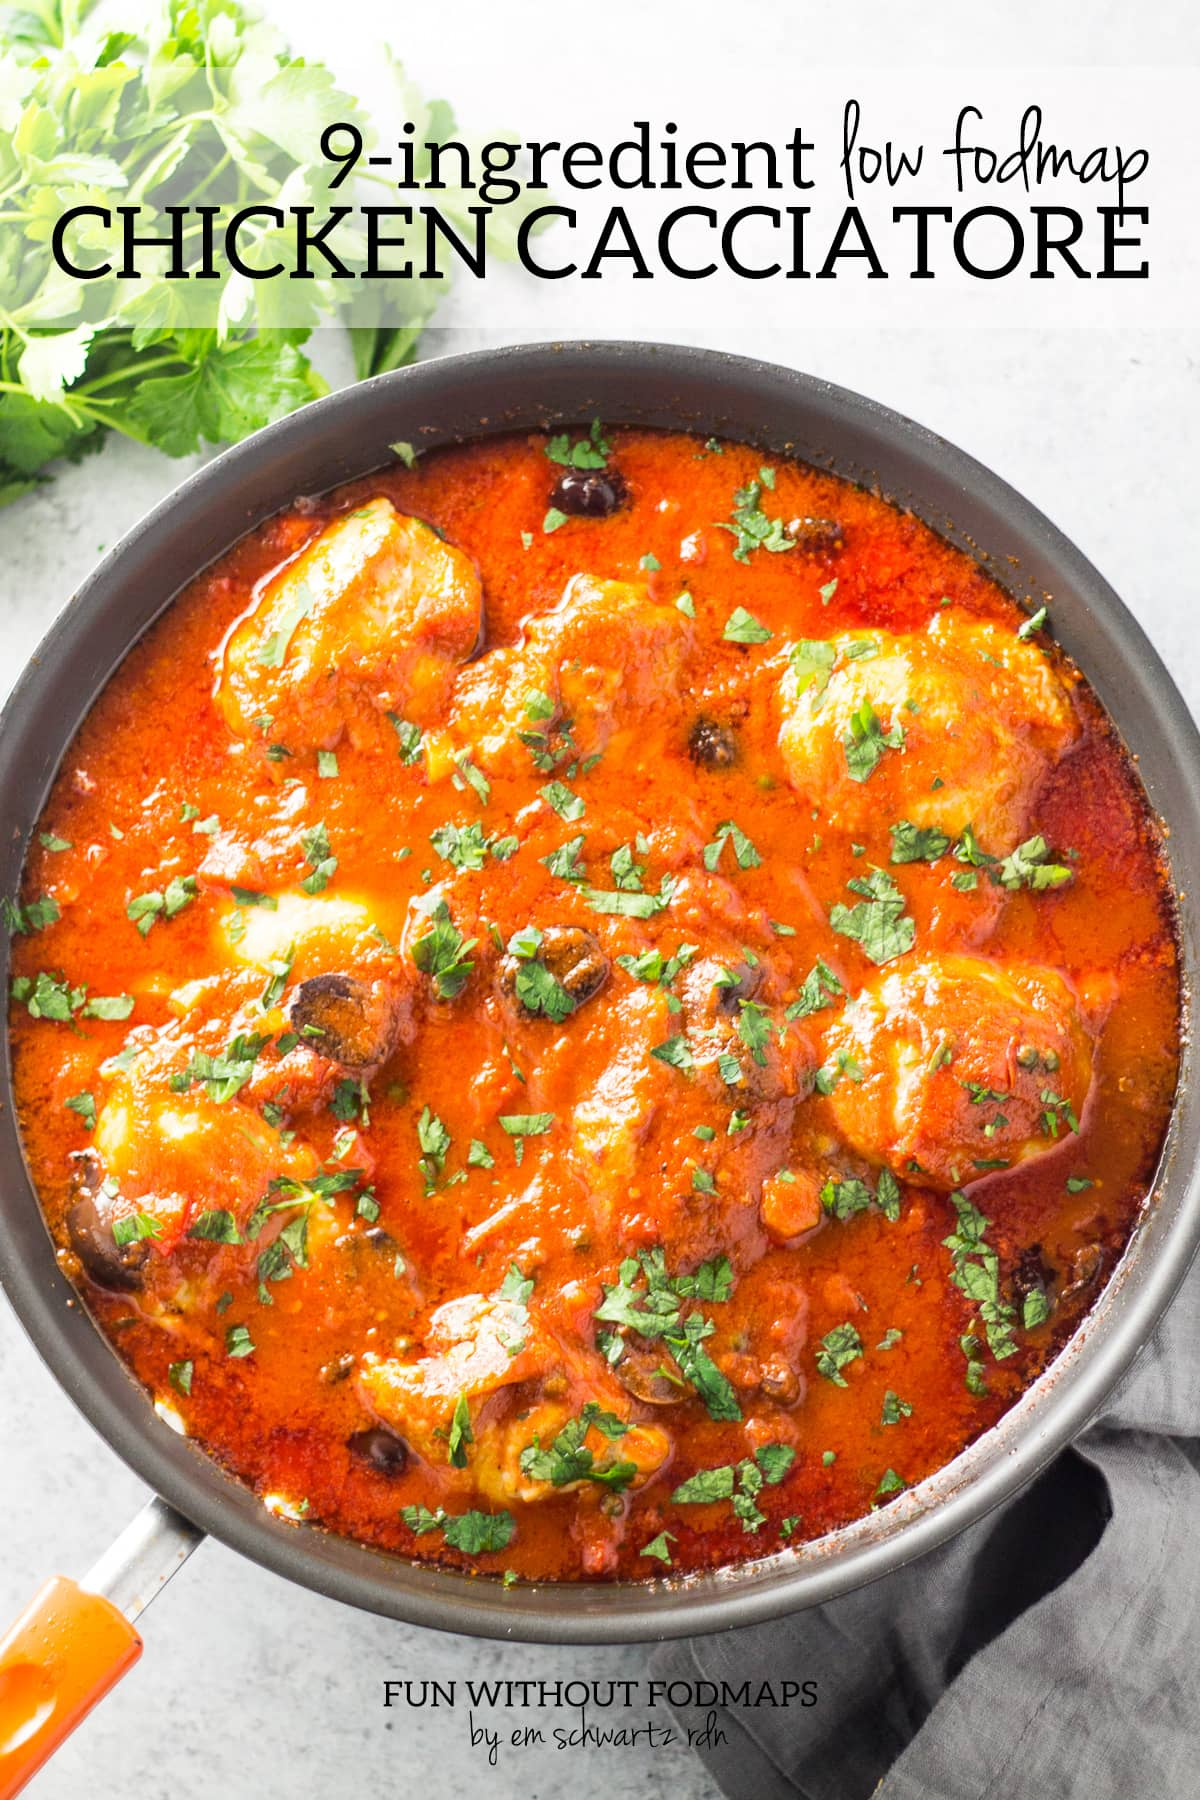 """Looking down at a skillet filled with chicken simmered in a tomato sauce. Above black text reads """"9 Ingredient Low FODMAP Chicken Cacciatore"""""""